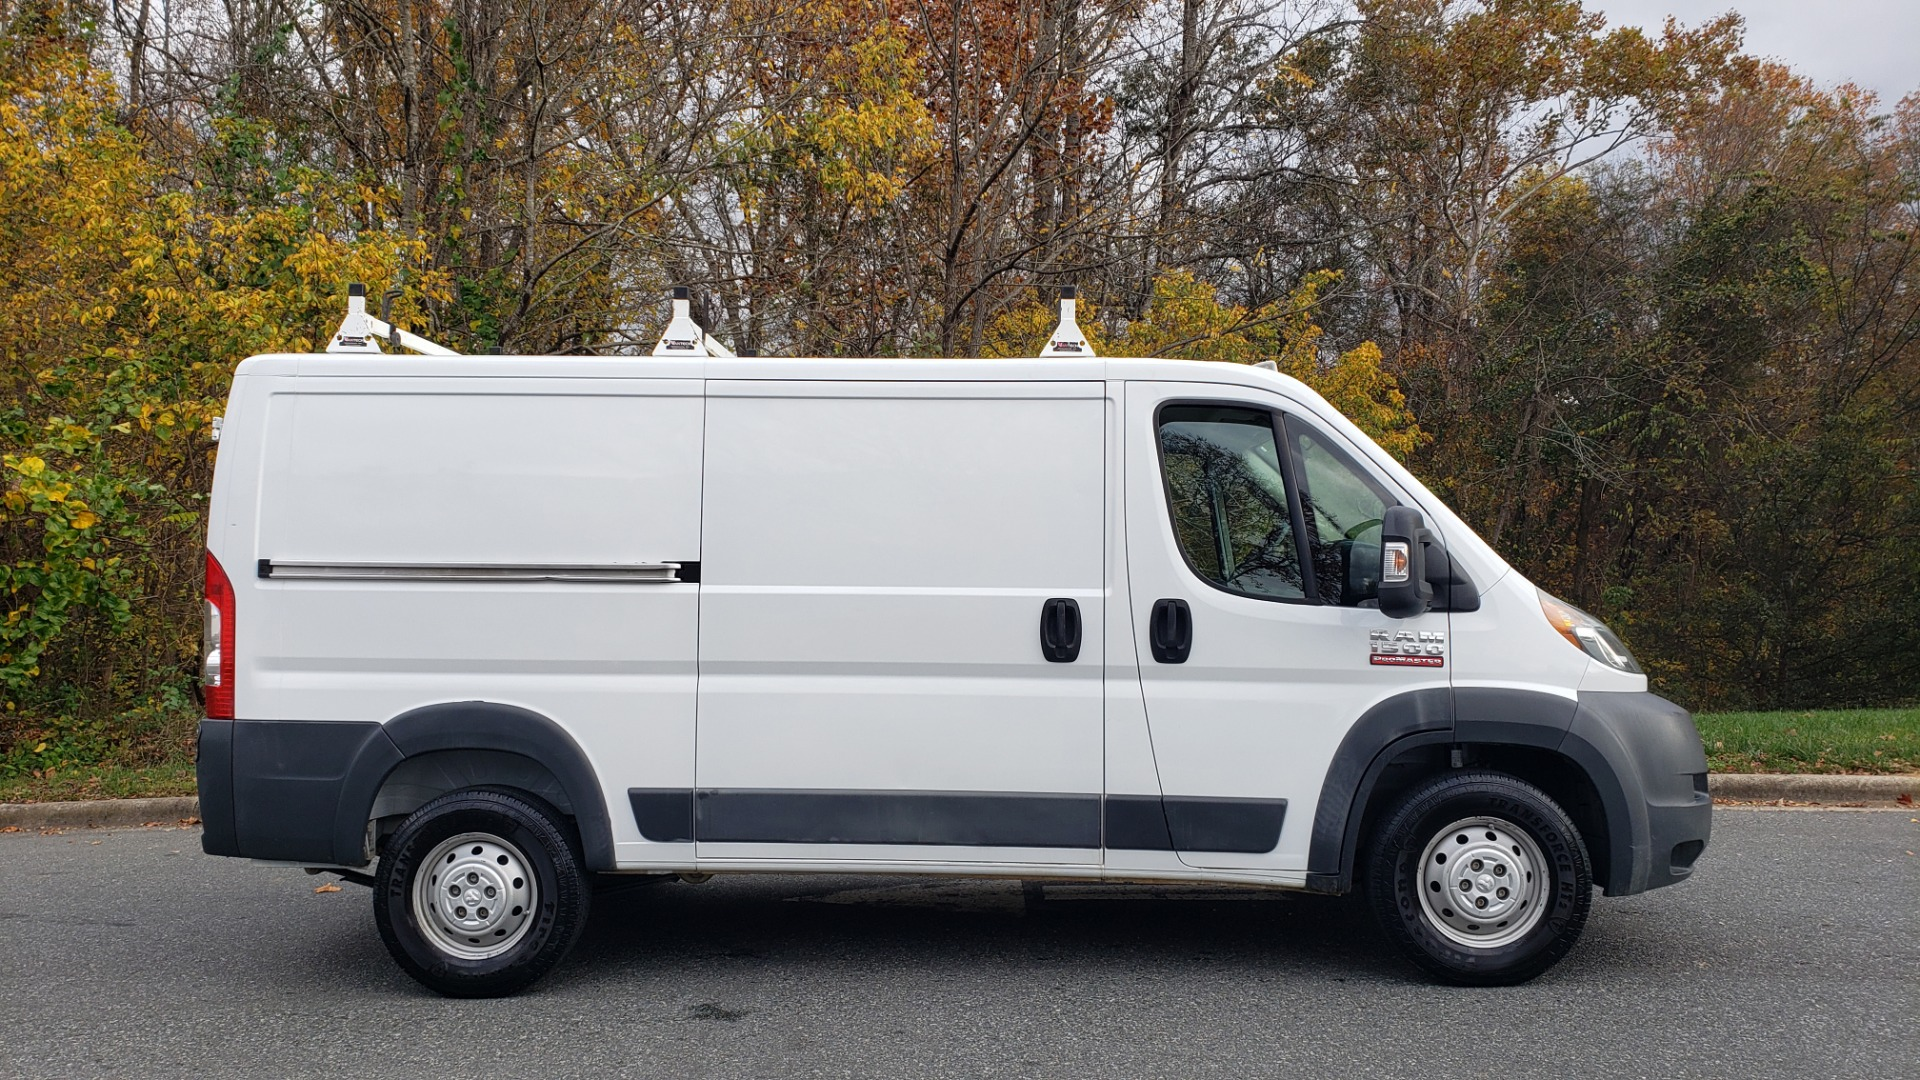 Used 2015 Ram PROMASTER CARGO VAN 136-INCH WB / LOW ROOF / LADDER RACK / INSIDE RACKS for sale Sold at Formula Imports in Charlotte NC 28227 5